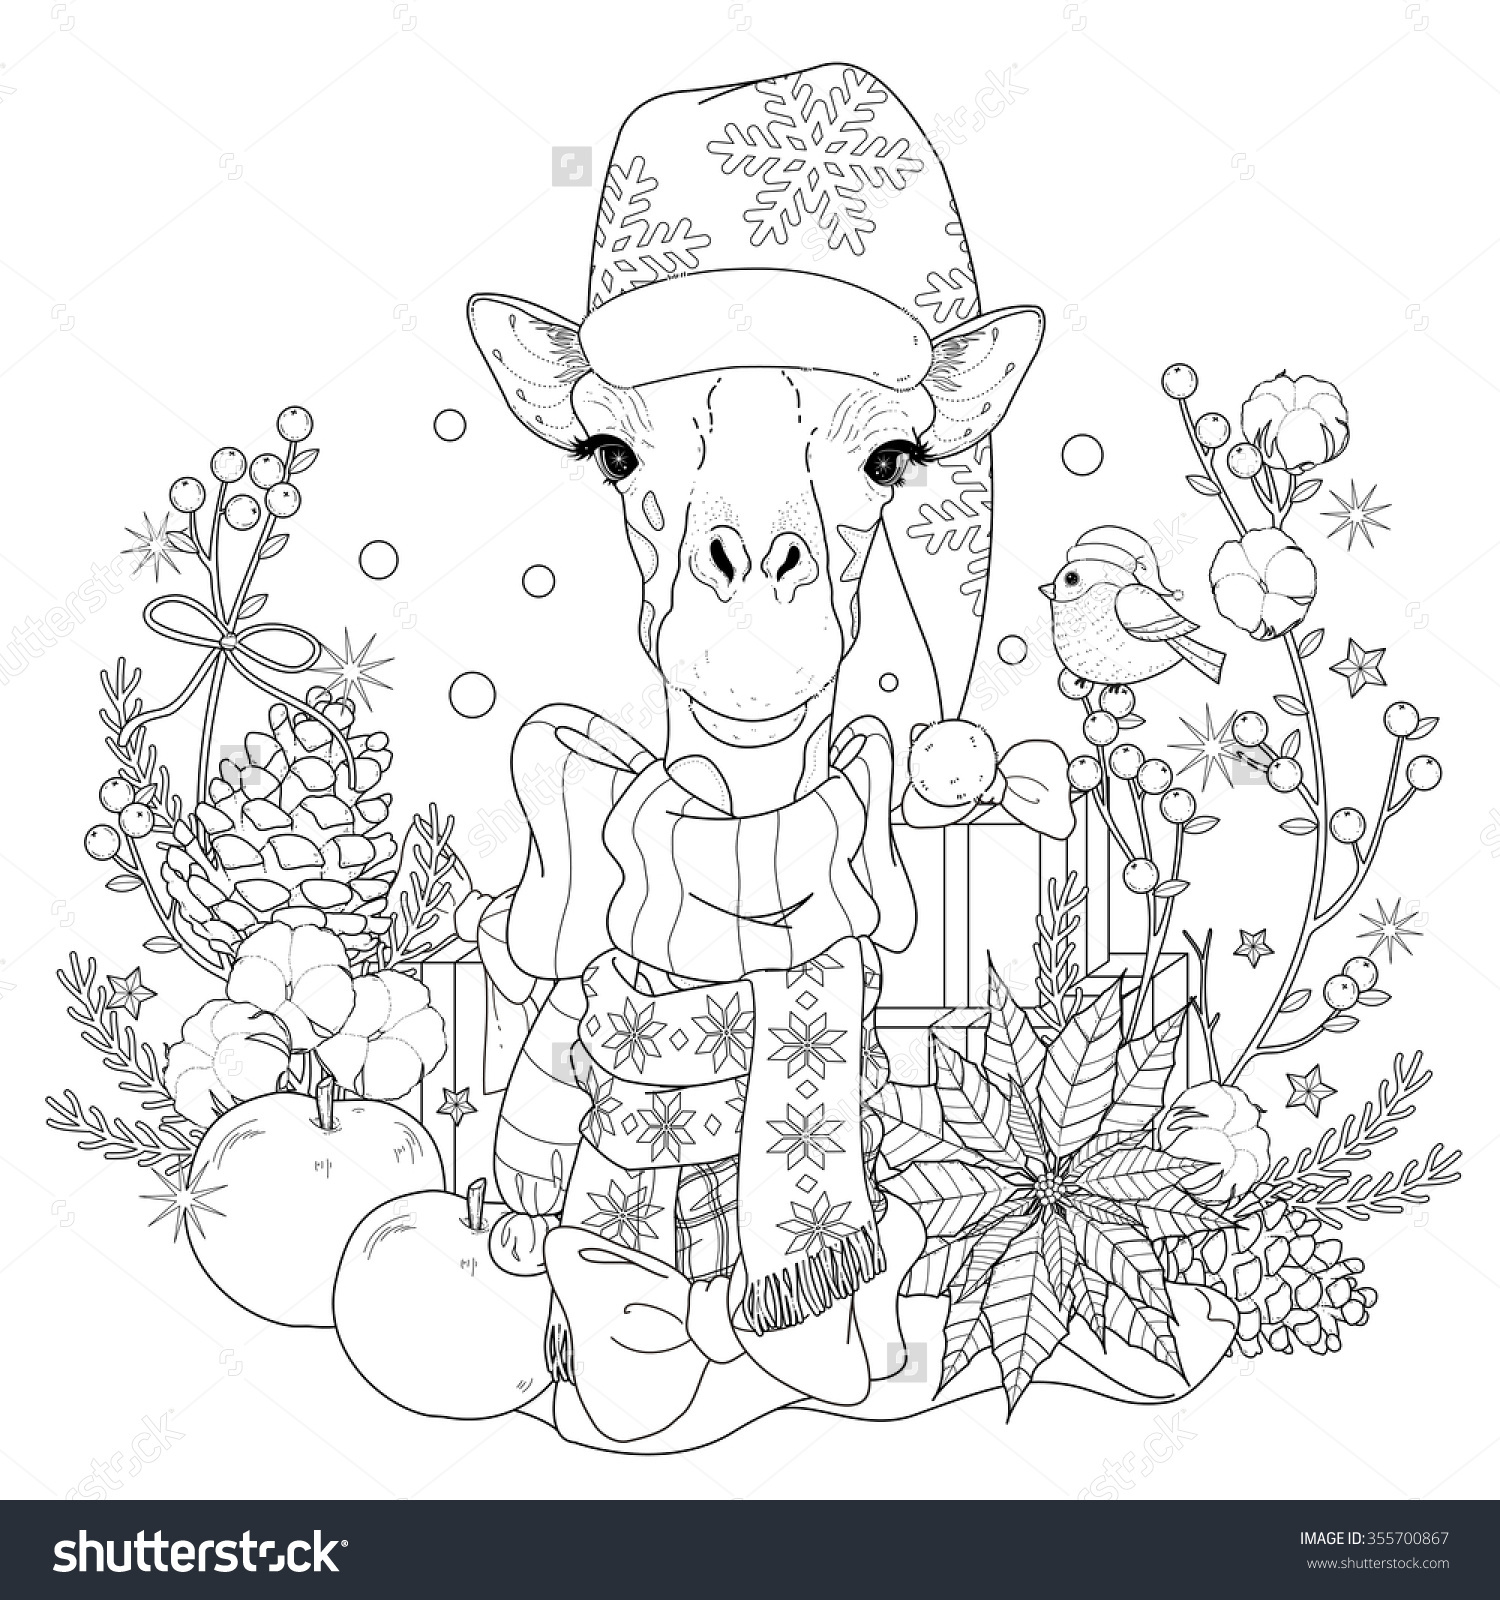 Coloring pages giraffe - Christmas Giraffe Coloring Page With Decorations In Exquisite Line